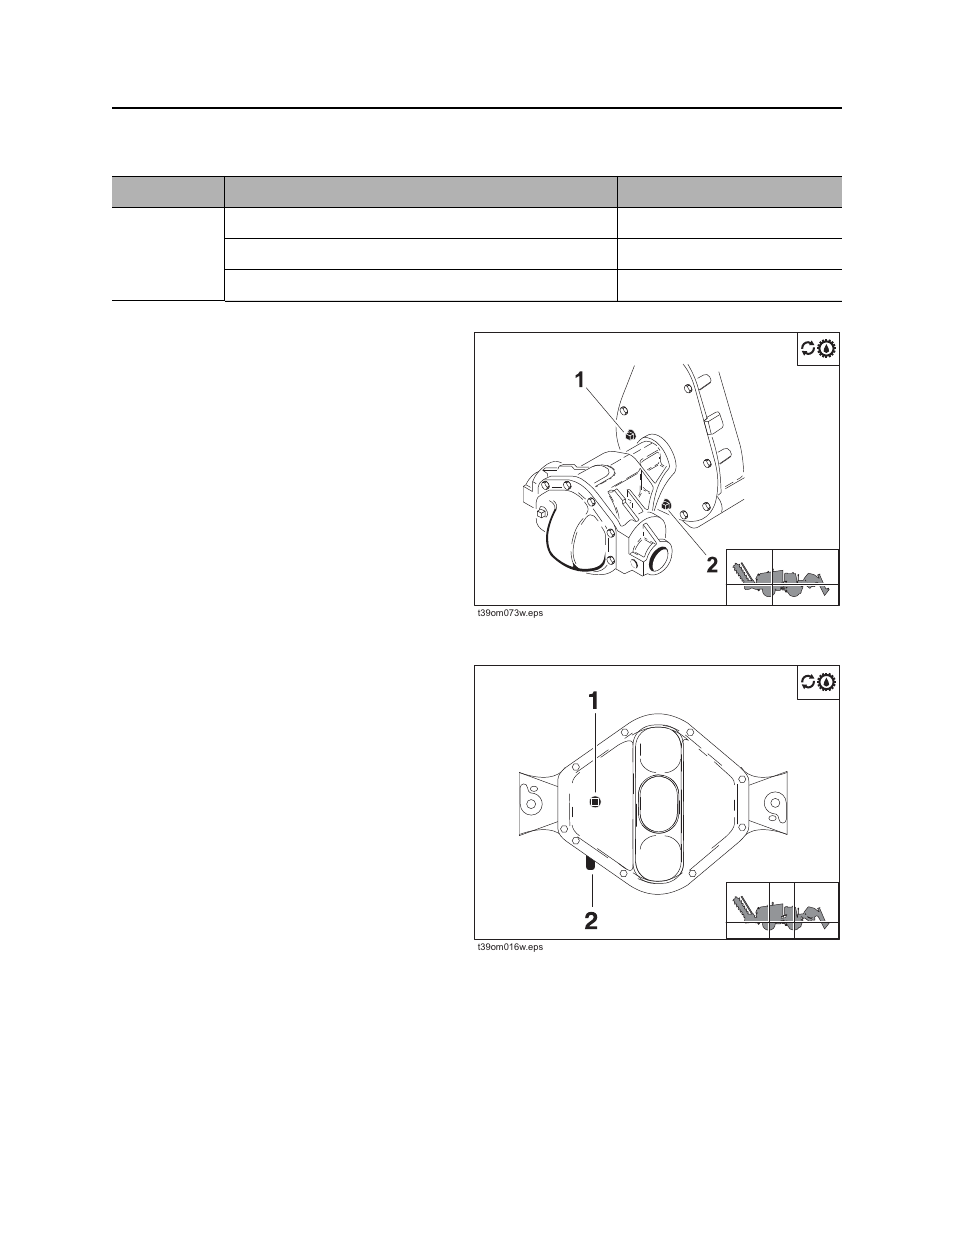 ditch plug diagram download wiring diagram rh a15 year of flora be